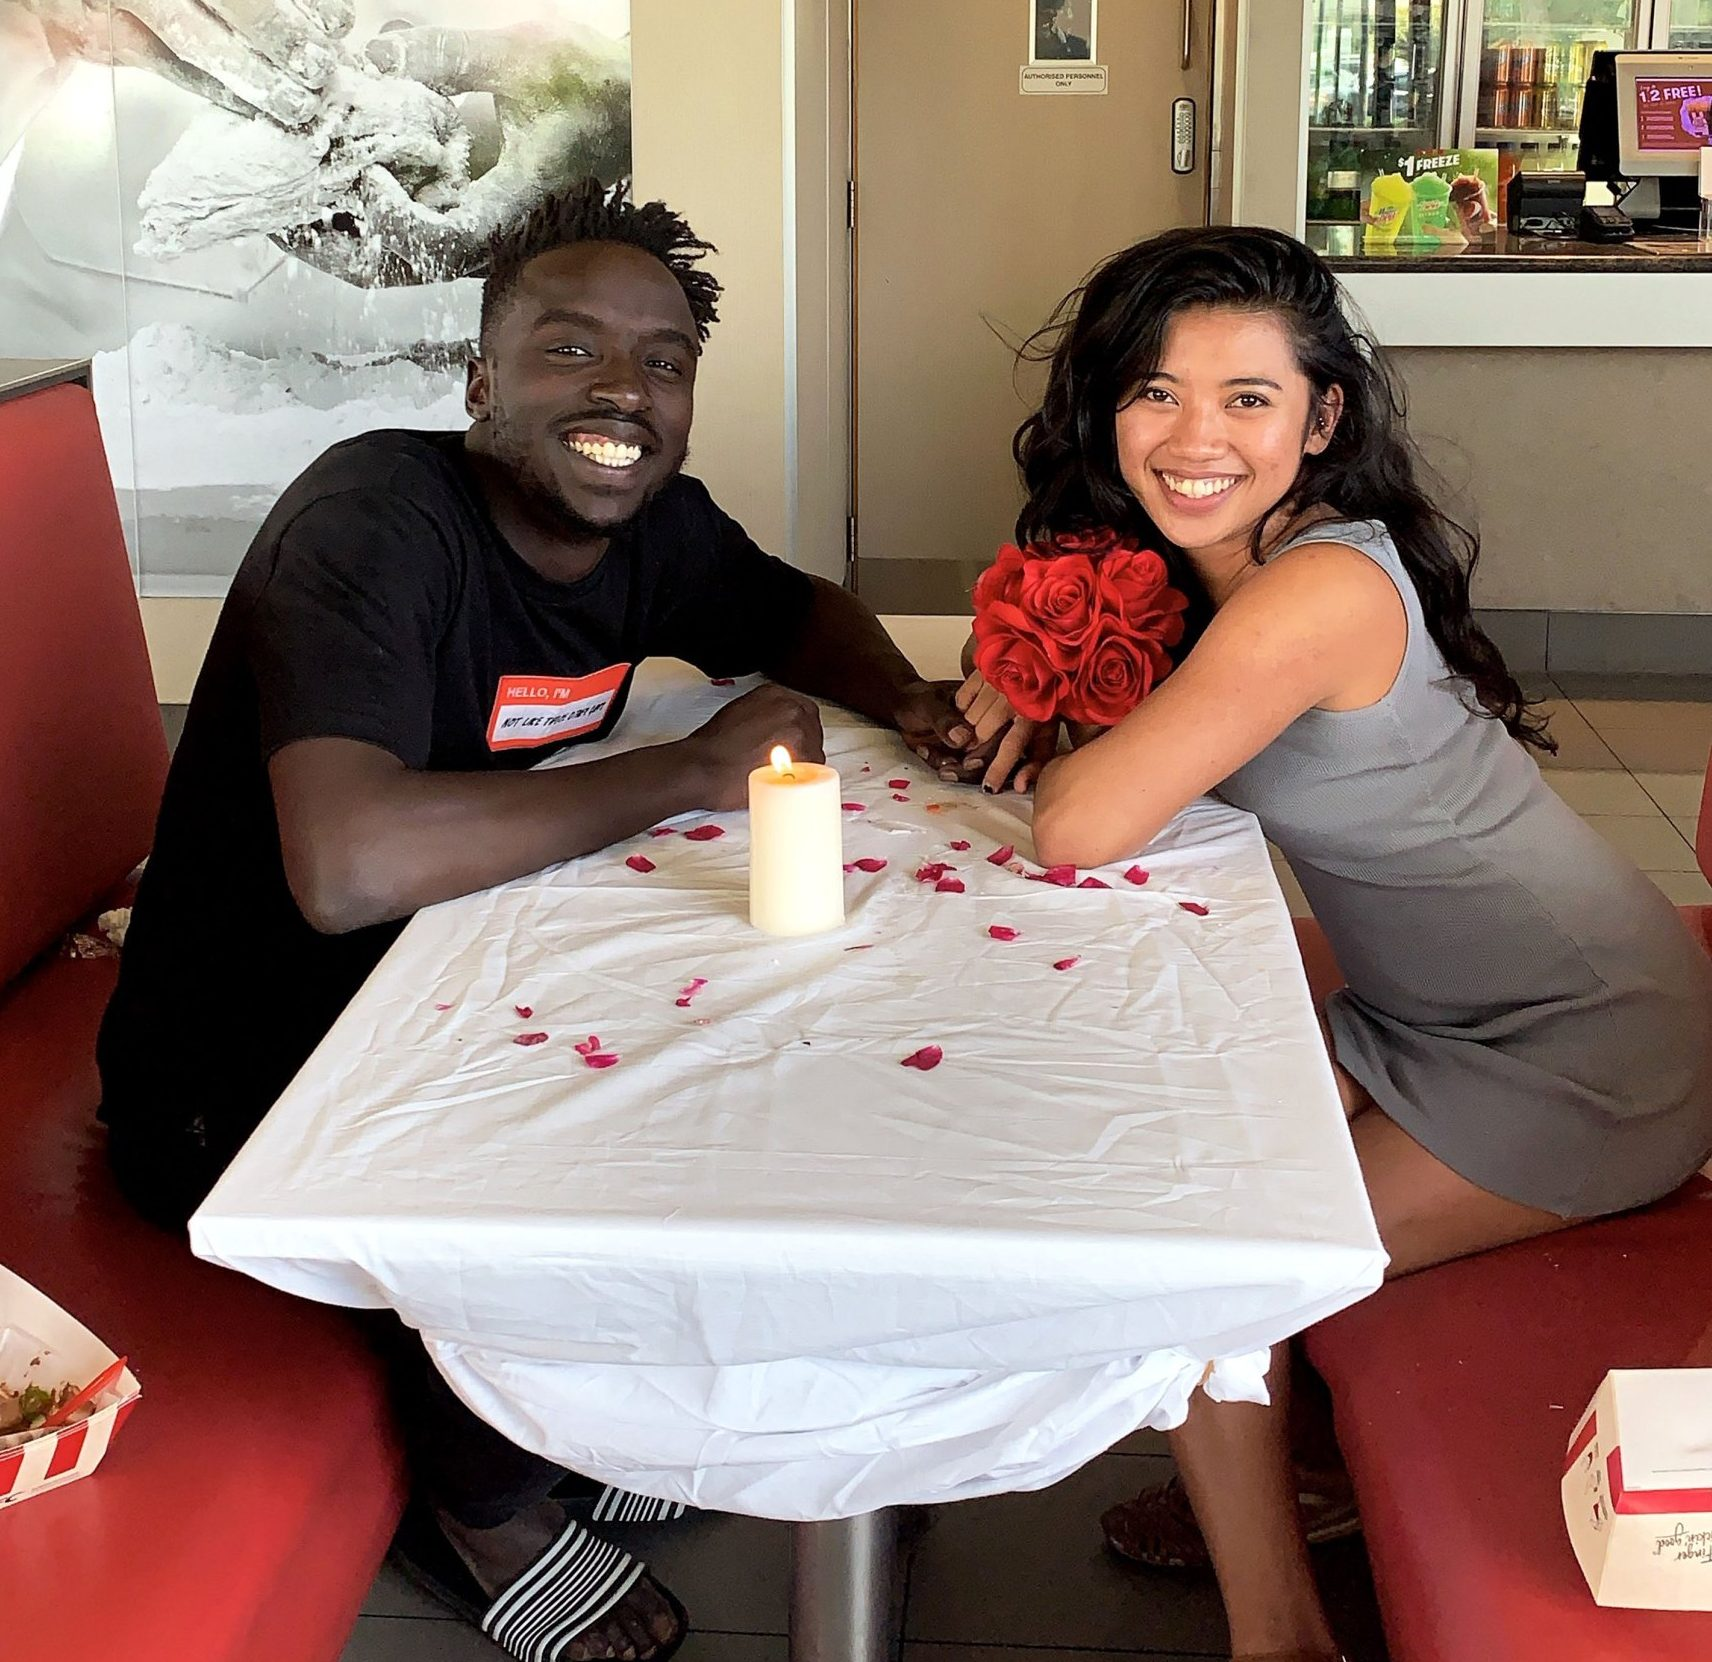 PIC FROM Emmanuel Kei/Caters News - (PICTURED: Emmanuel Kei, 23, with his girlfriend Diane Del, 26, in in Adelaide, South Australia late last month [21 DECEMBER].) - A romantic boyfriend has taken his partners love of fried chicken to the extreme by surprising her with a fancy dinner date at KFC complete with candles, rose petals and table service.Forget about the Colonels top secret 11 herbs and spices Australian heartthrob Emmanuel Kei has discovered the ultimate secret for spicing up his love life: a romantic dinner date at KFC.SEE CATERS COPY